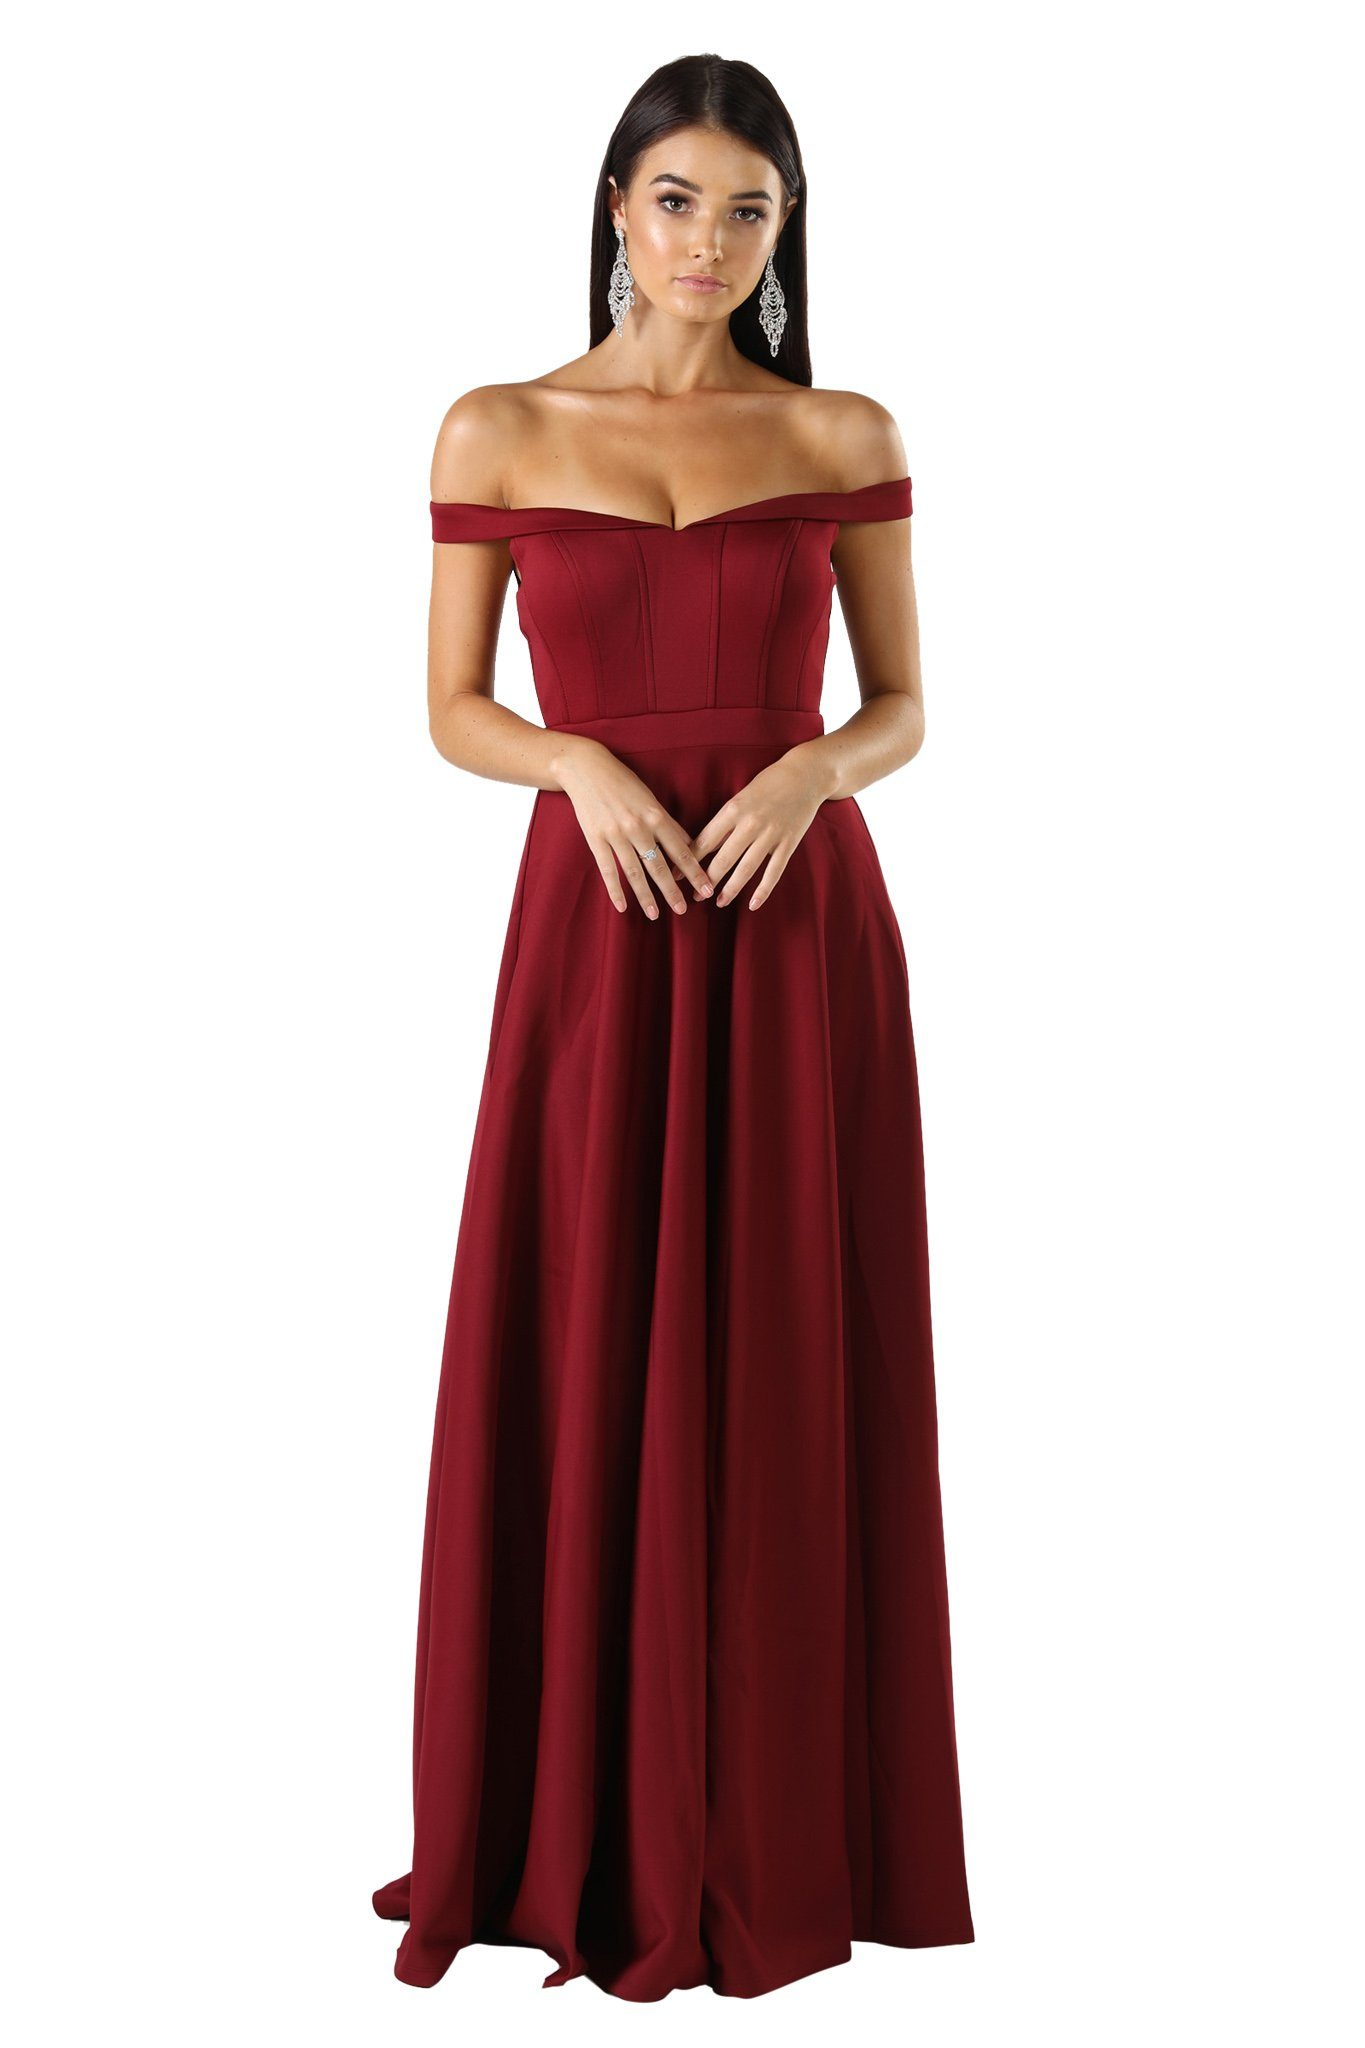 Off shoulder ponti floor length A line skirt gown in wine/deep red color